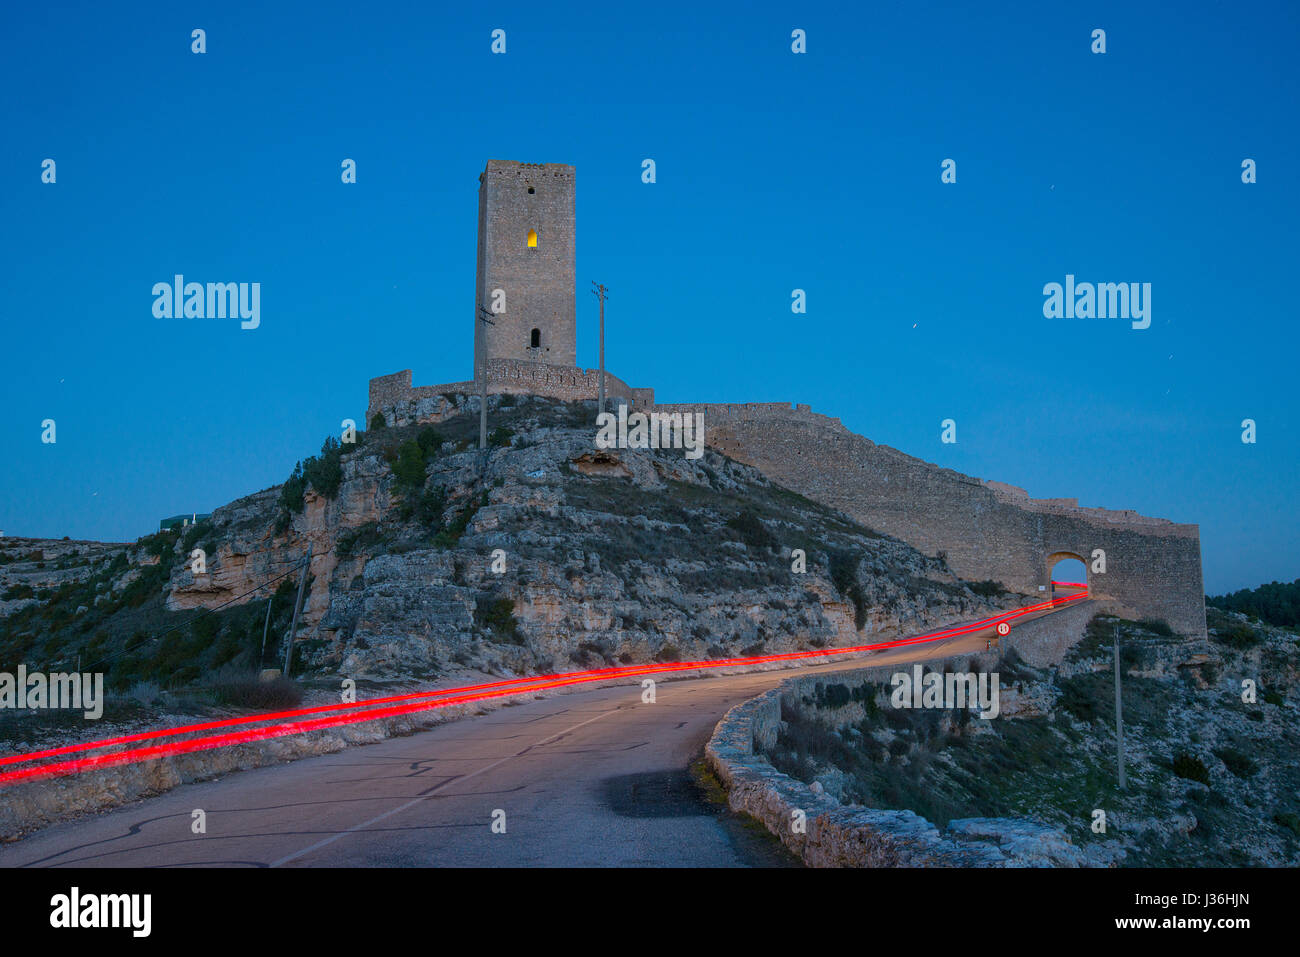 Ruins of medieval tower and red light trail, night view. Alarcon, Cuenca province, Castilla La Mancha, Spain. - Stock Image